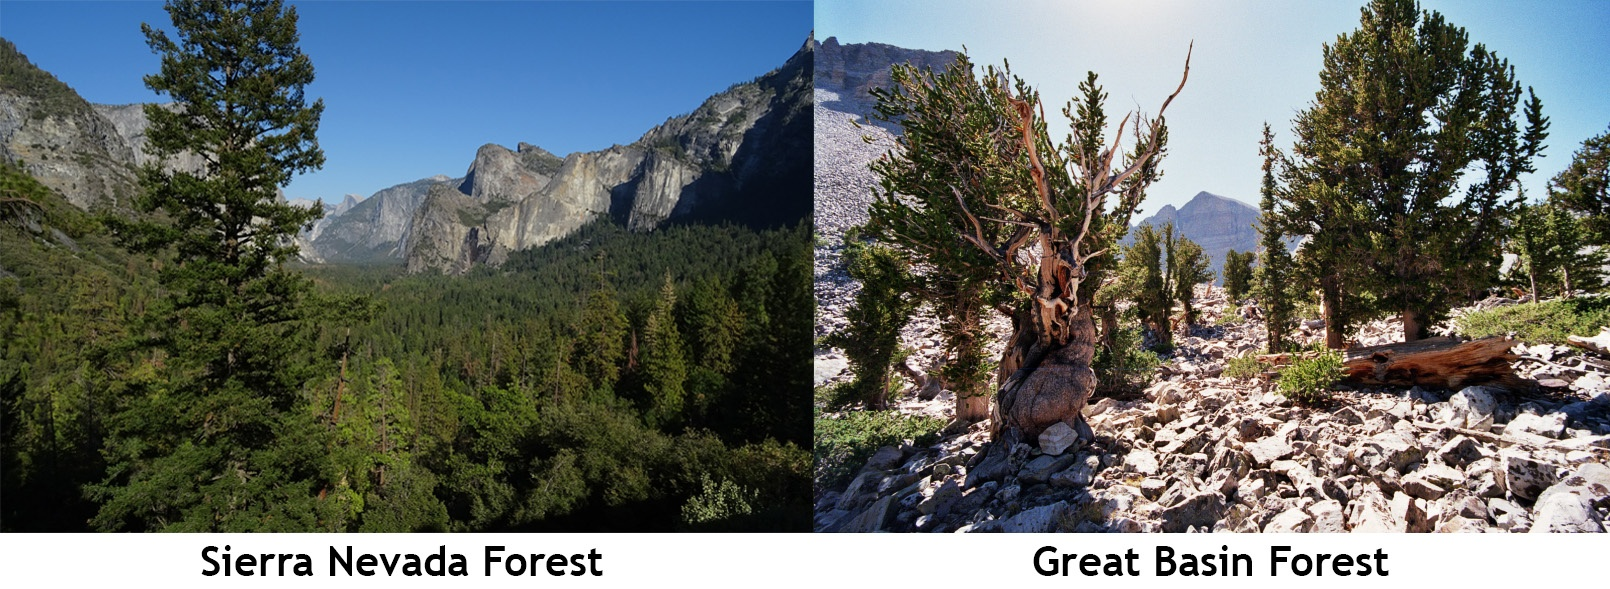 Sierra Nevada Forest Compared to Great Basin Forest